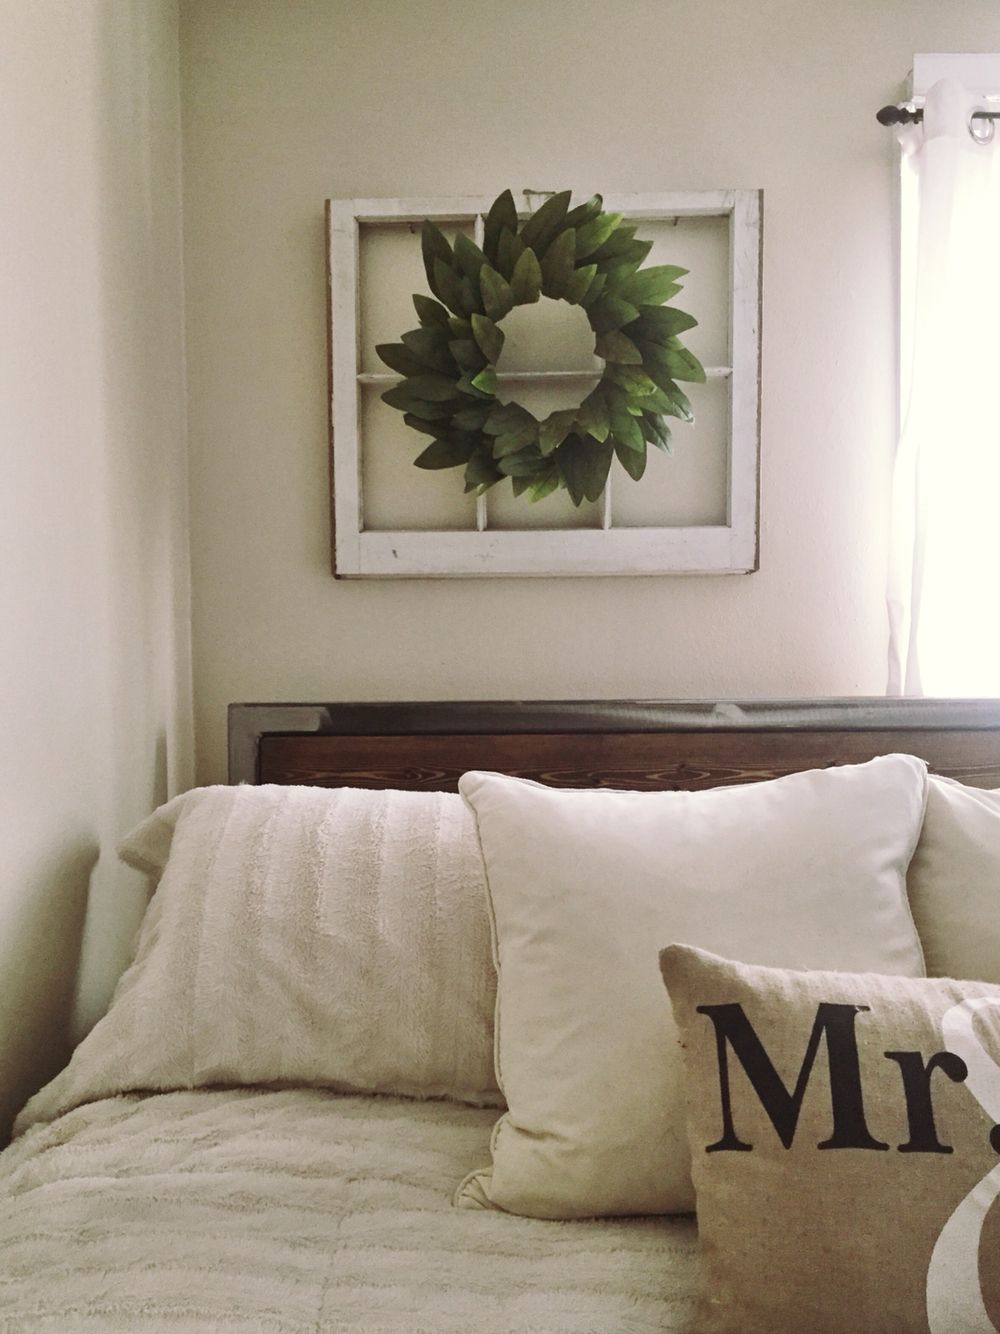 Diy Greenery Wreath On An Old Window Frame